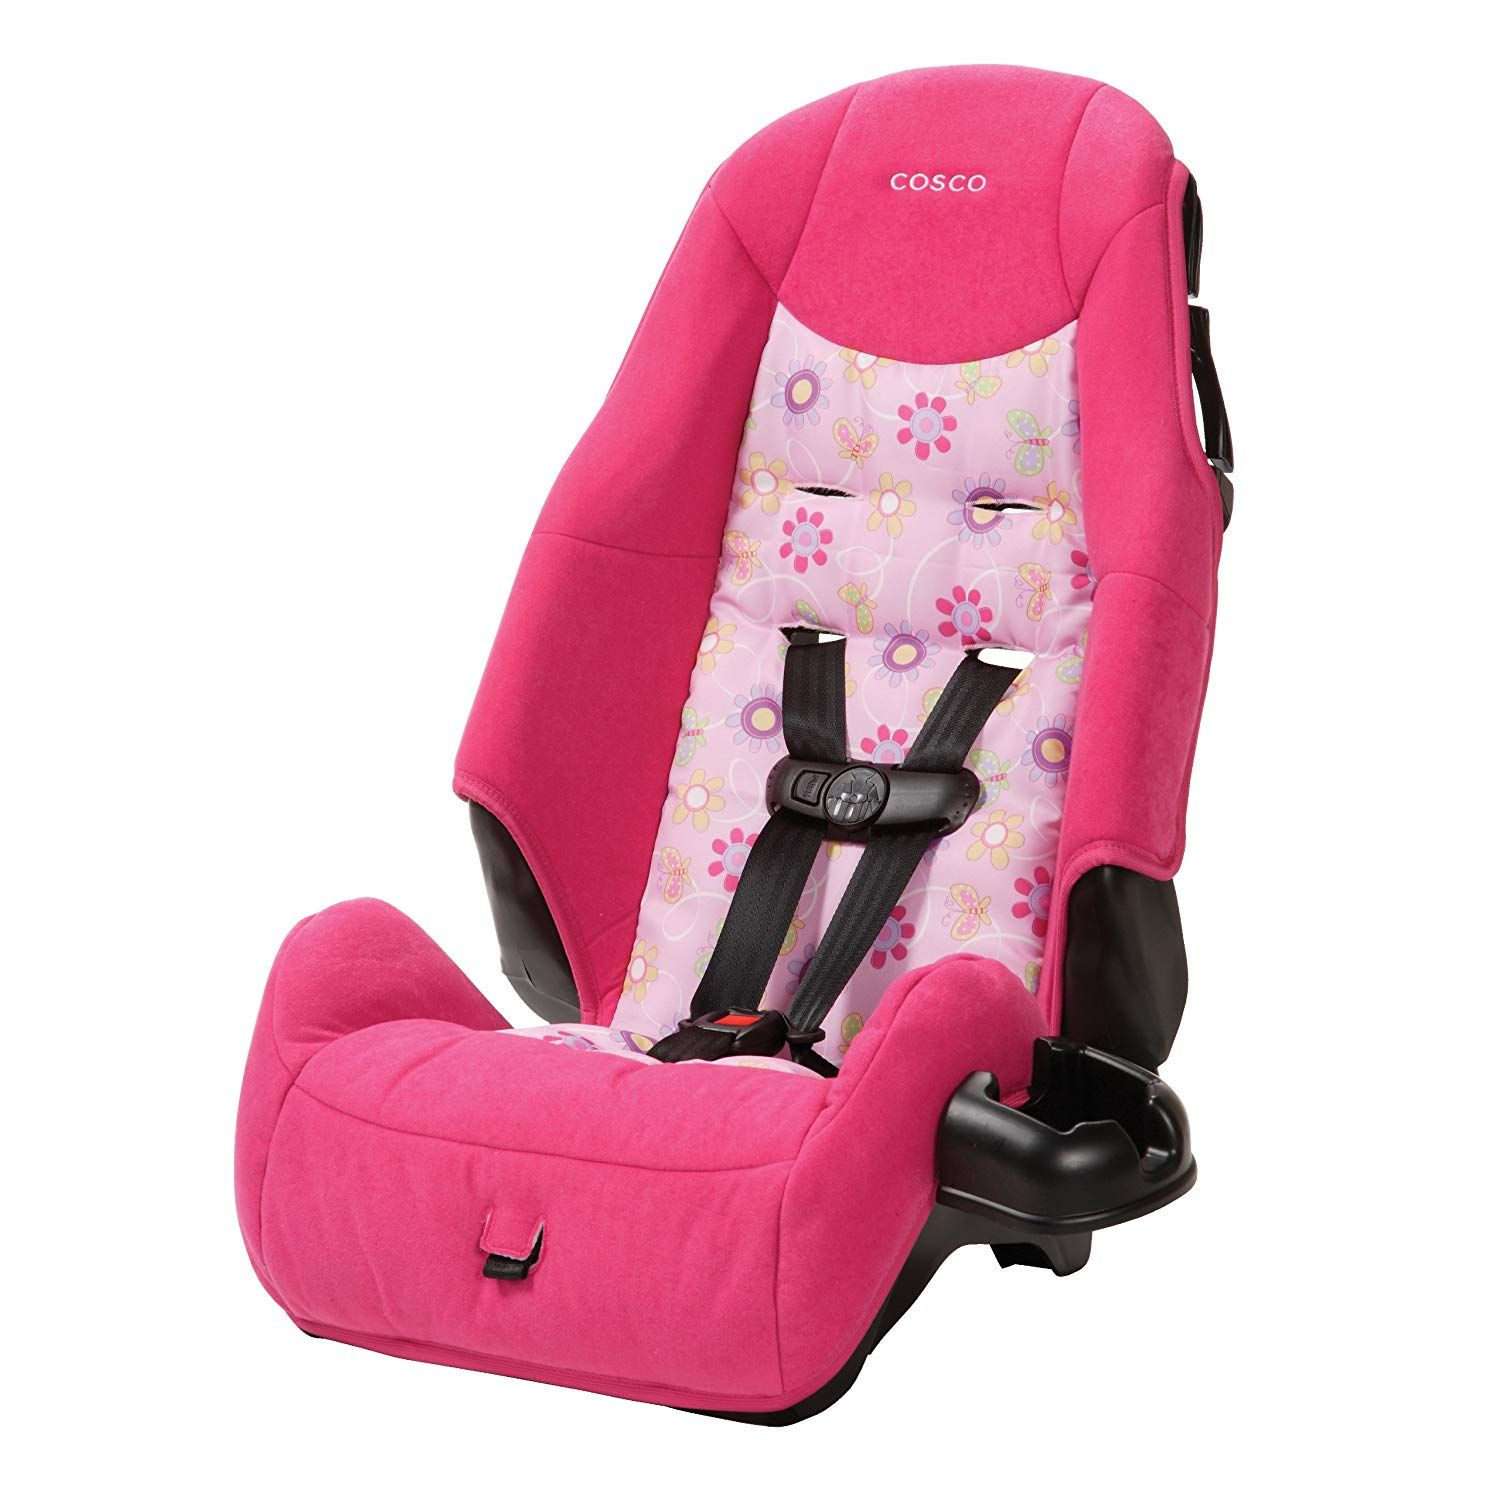 Cosco â Highback 2in1 Booster Car Seat â 5Point Harness